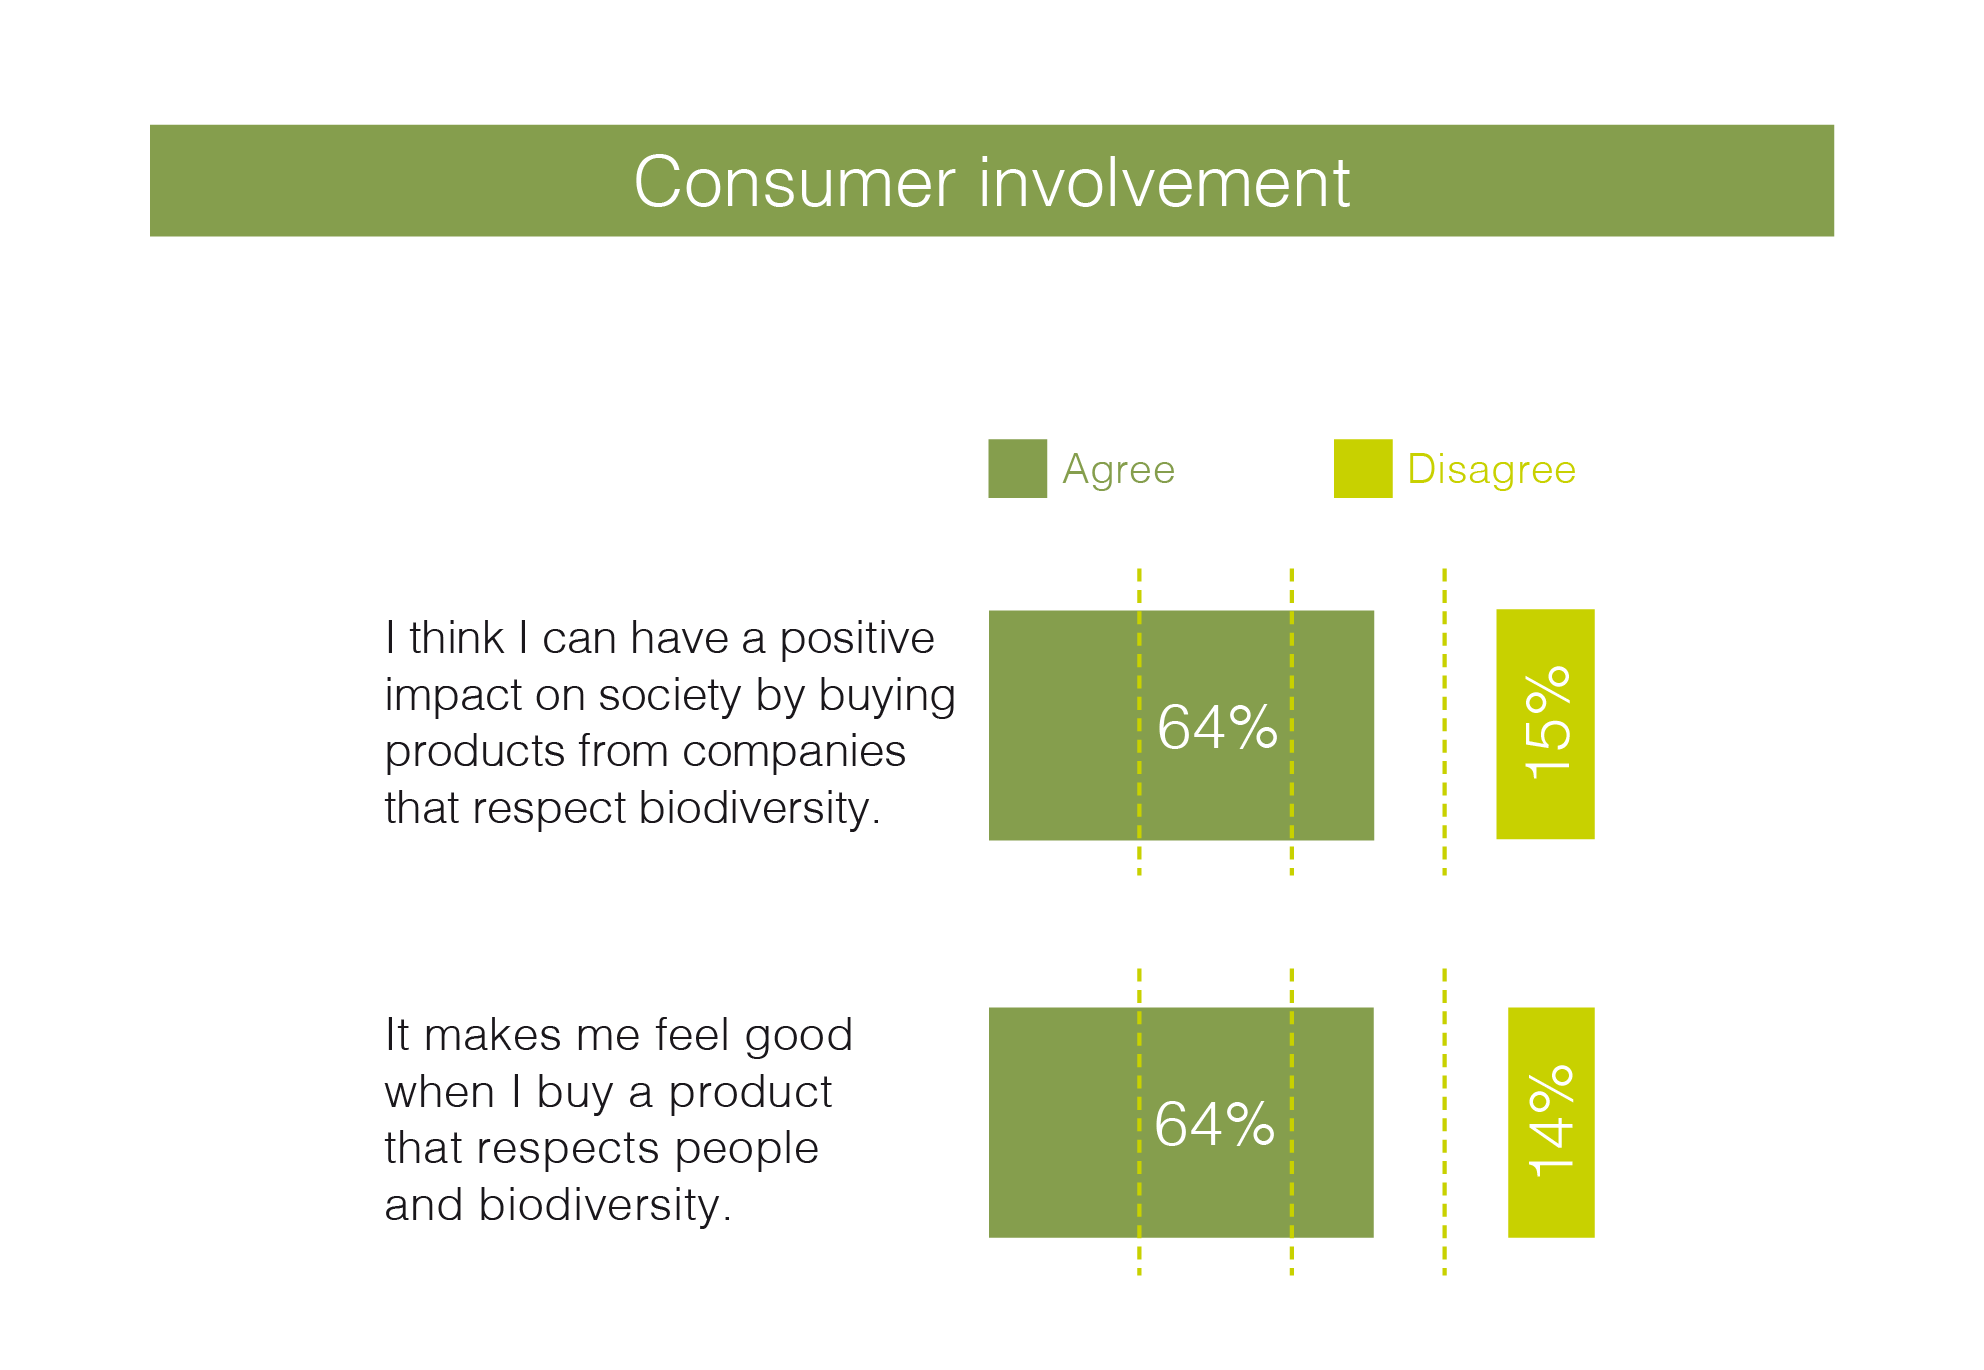 Agree = Total agree + rather agree   / Basis: All sample - UK- 1000 consumers